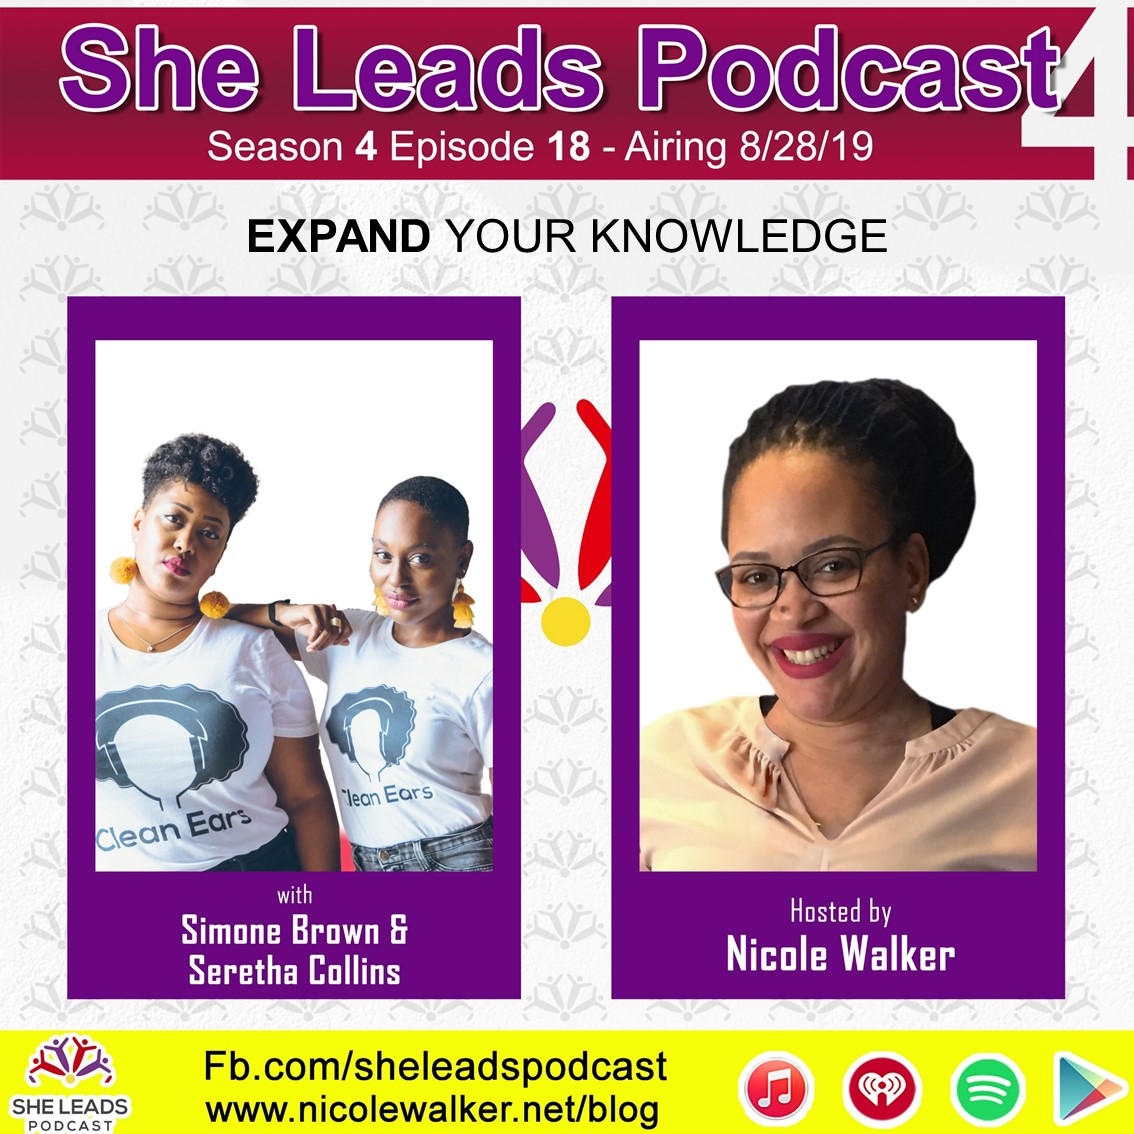 SHE LEADS PODCAST S4 E18: Expand Your Knowledge with Seretha